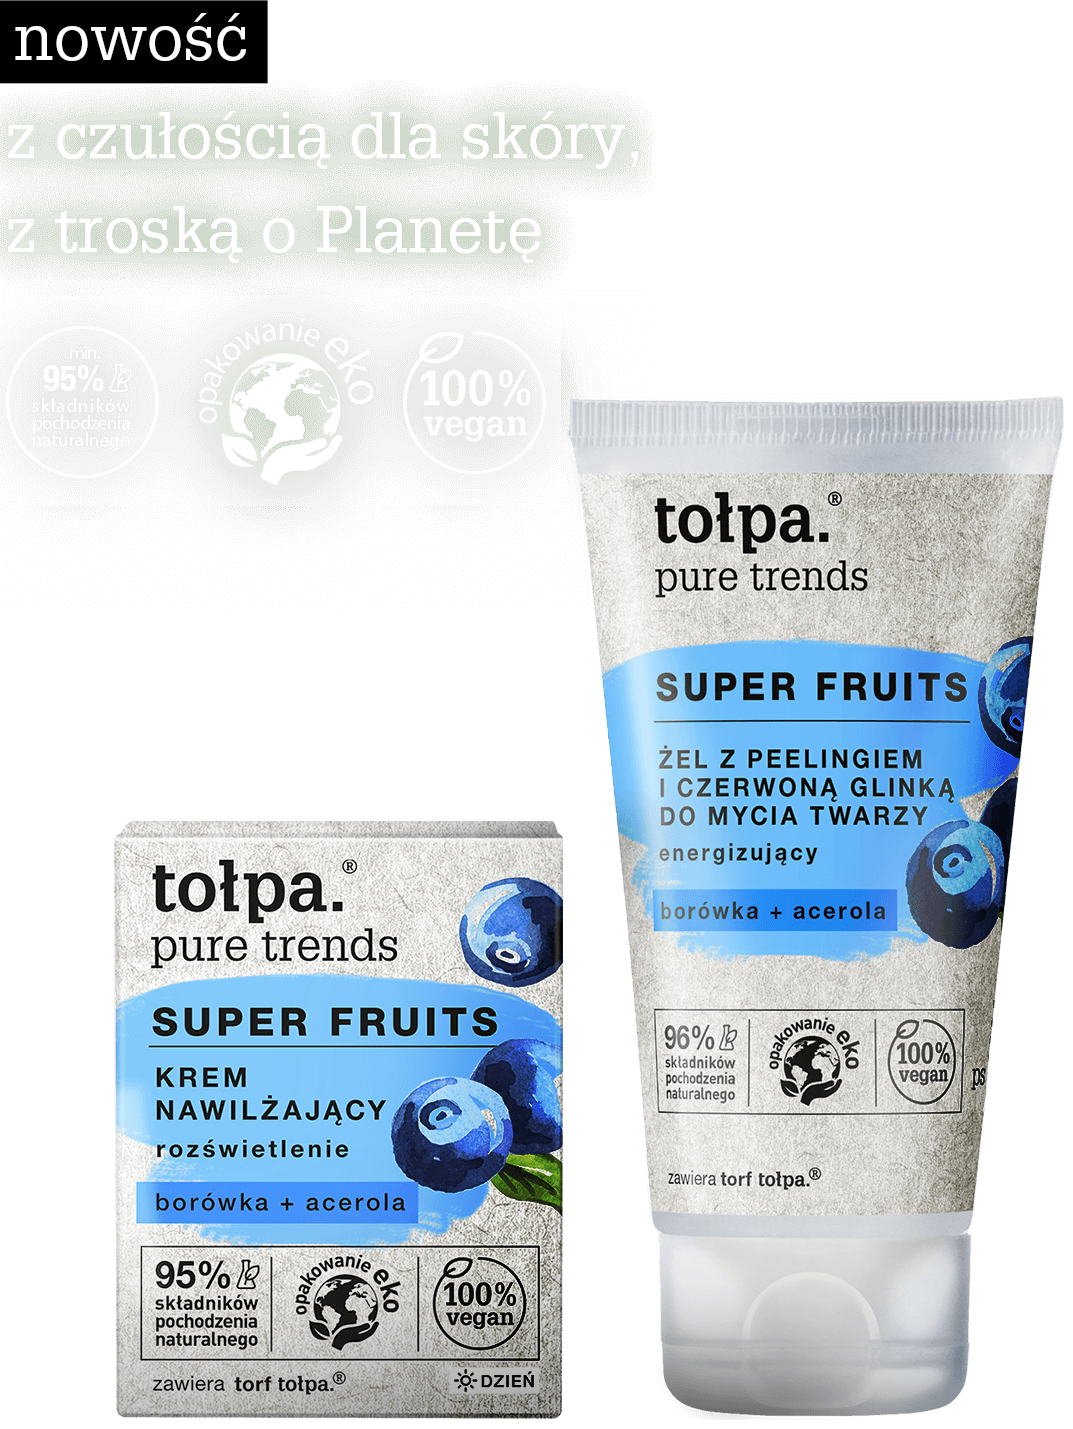 tołpa pure trends - super fruits